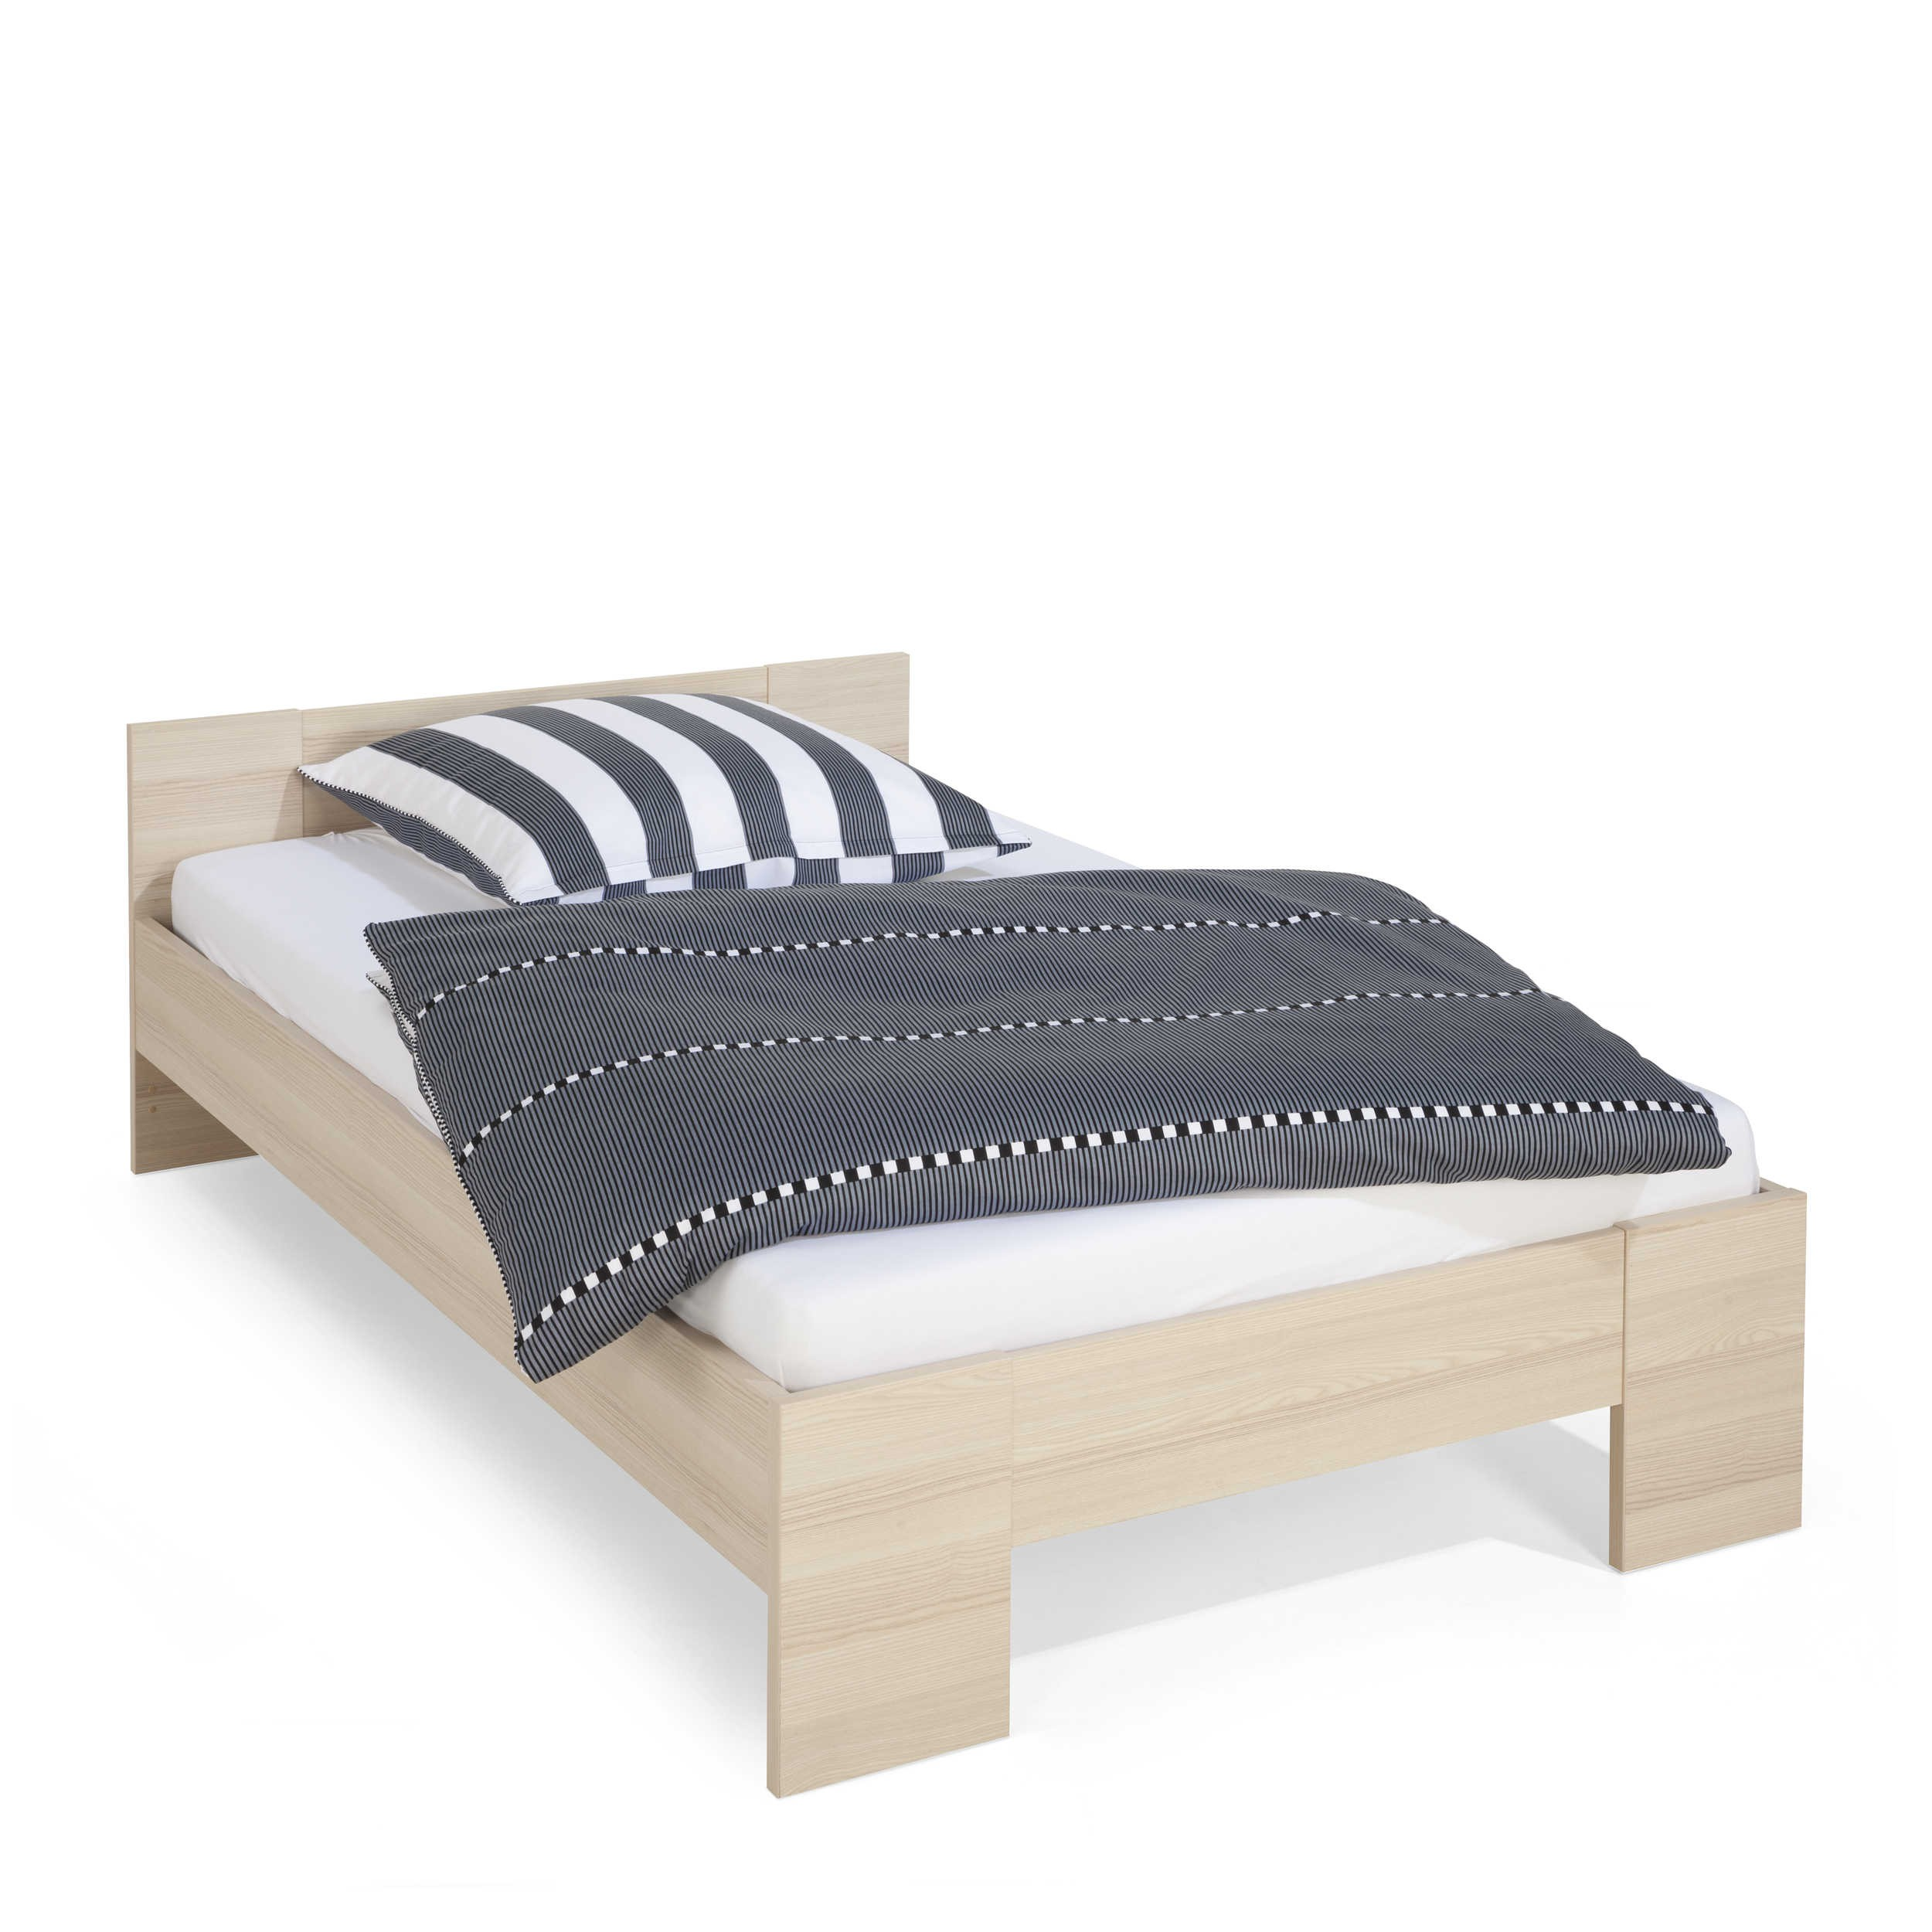 composad bett calisma 120 x 200 cm esche holzoptik online. Black Bedroom Furniture Sets. Home Design Ideas